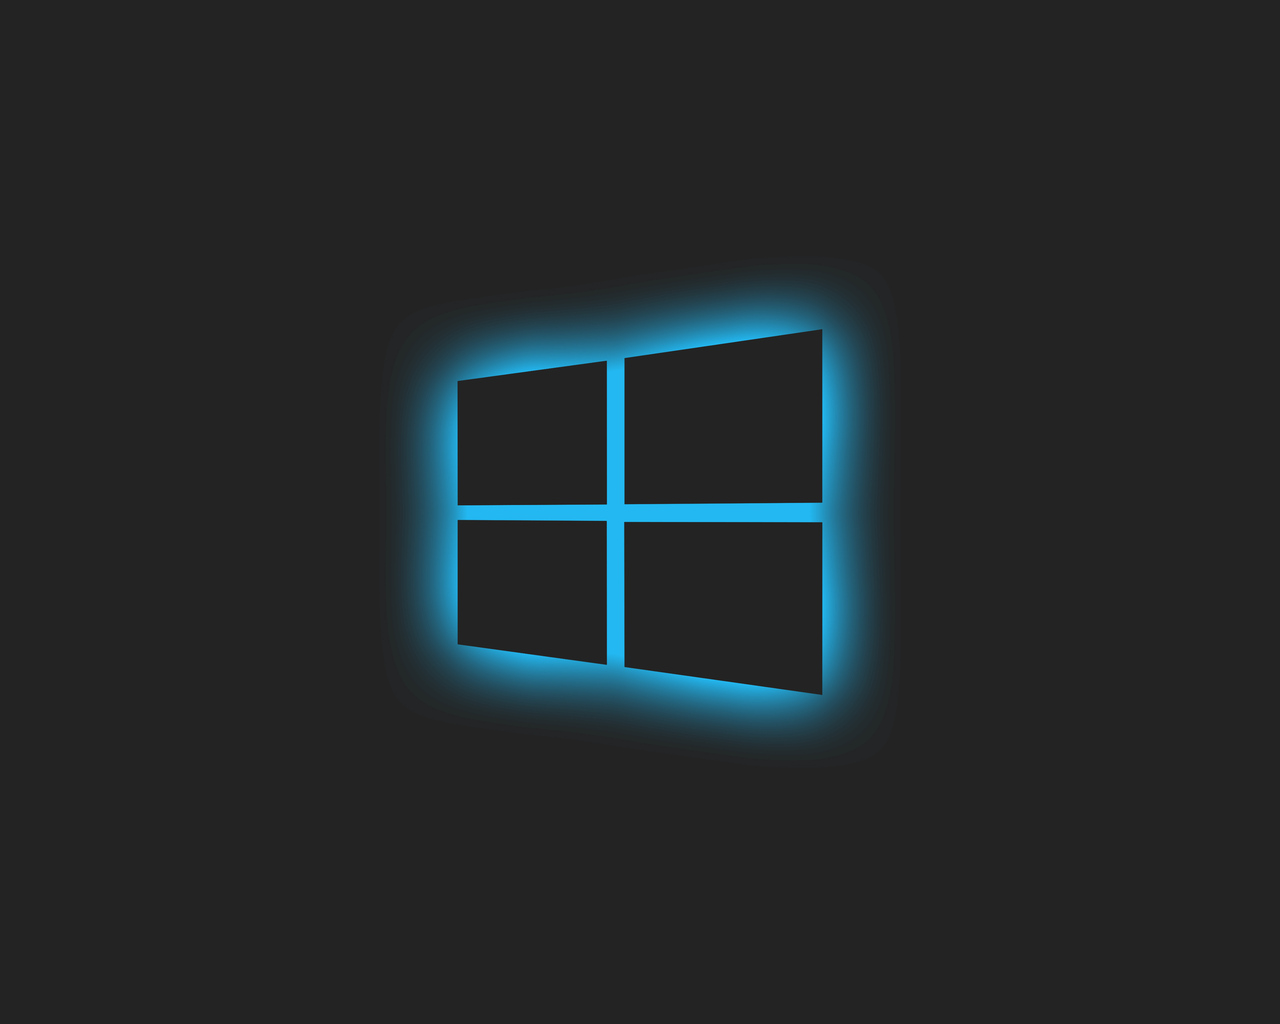 windows-glowing-logo-blue-5k-id.jpg